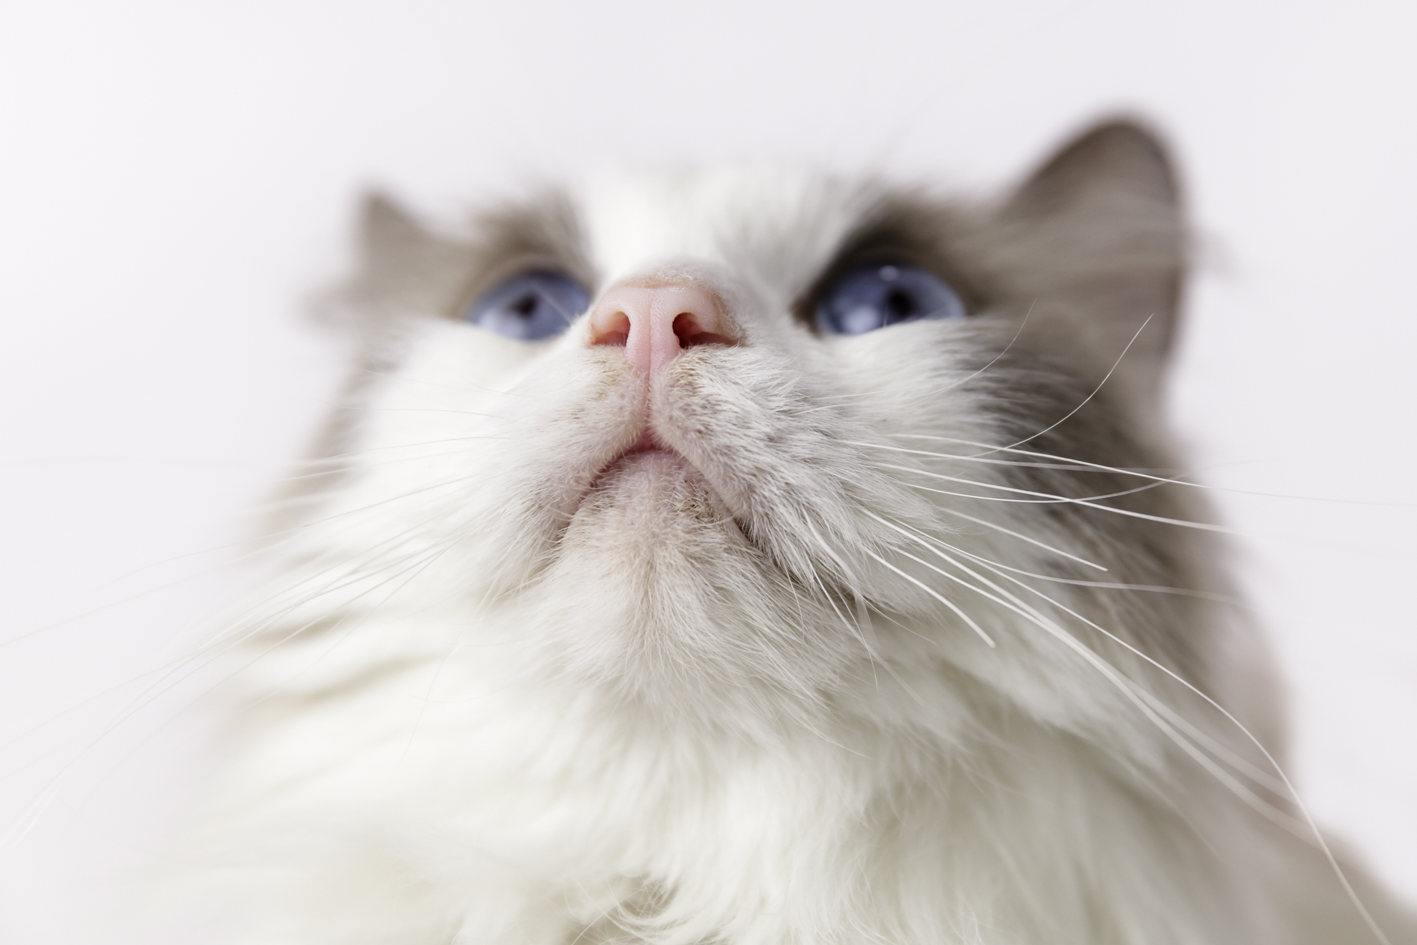 ragdoll cat close up nose